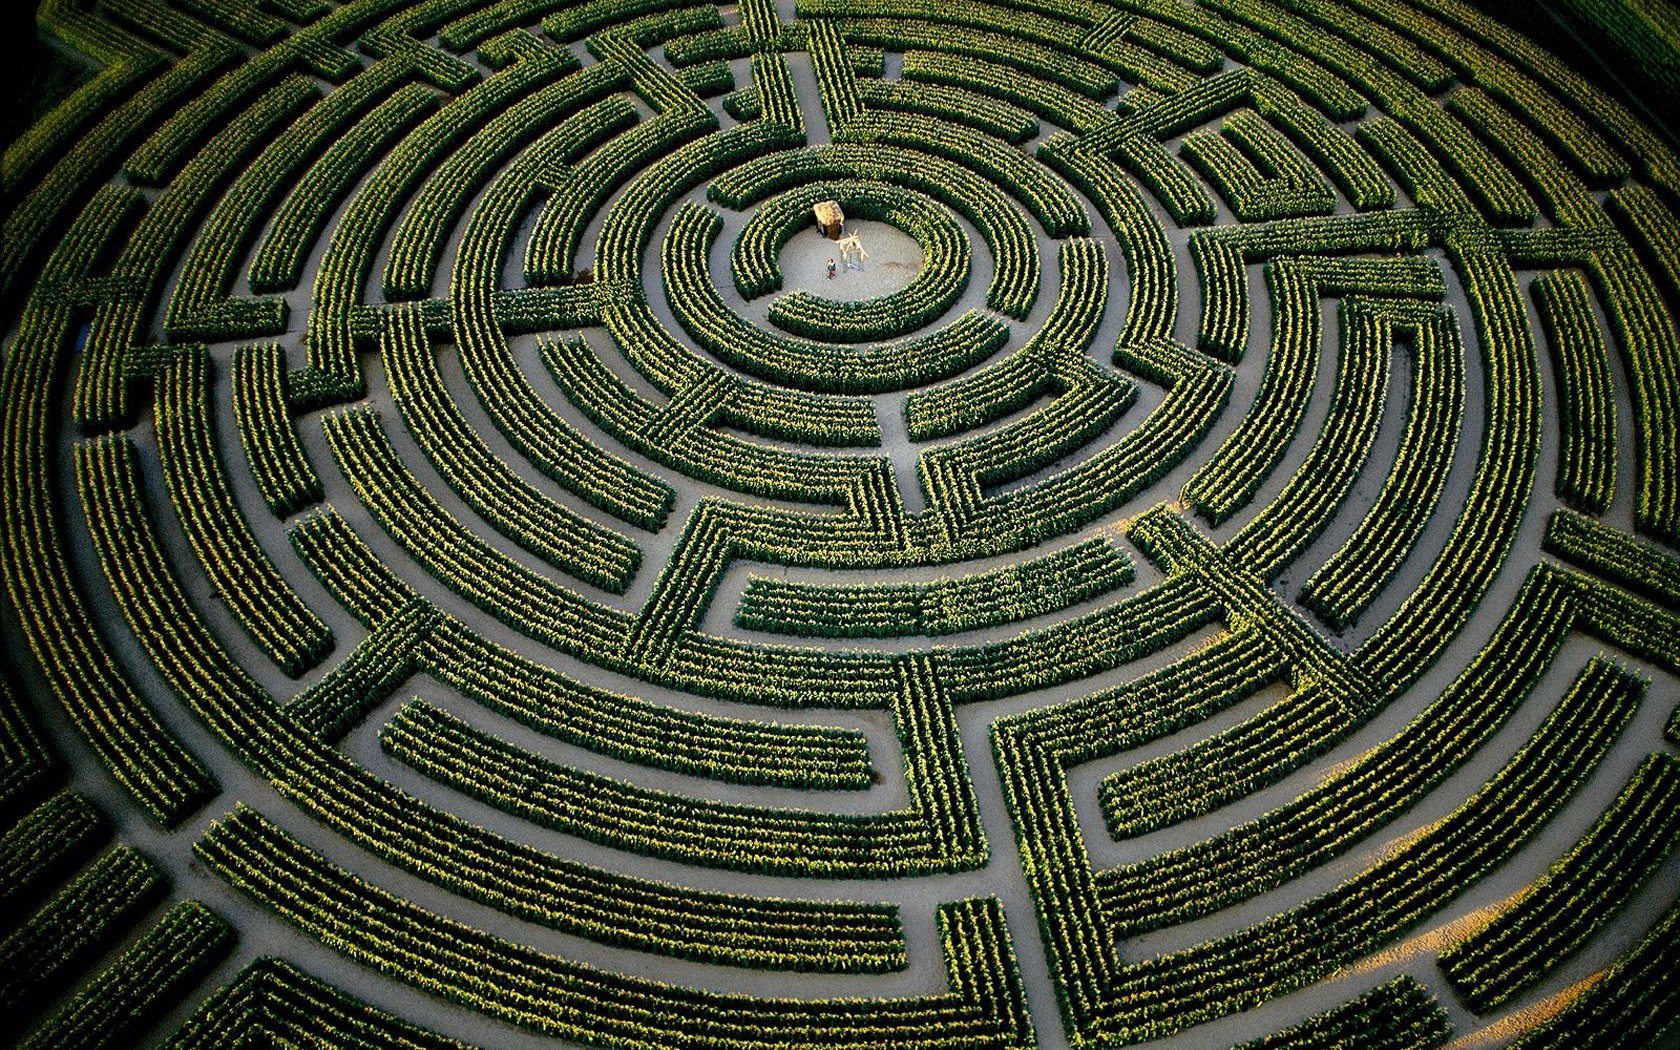 The largest plant maze in the world, at Reignac-sur-Indre, Indre-et-Loire Department, France